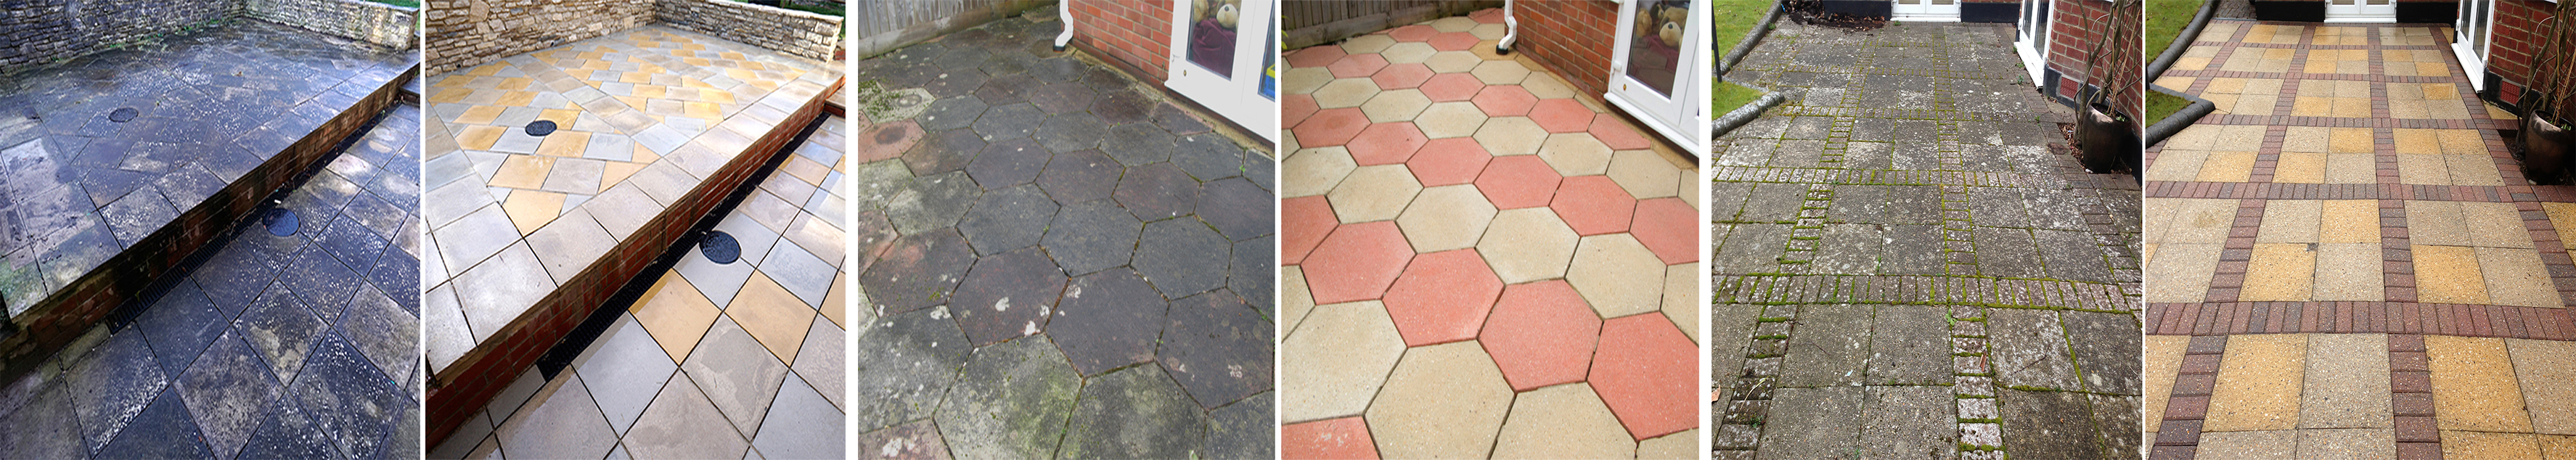 Patio Cleaning Services in Rockford, Hampshire